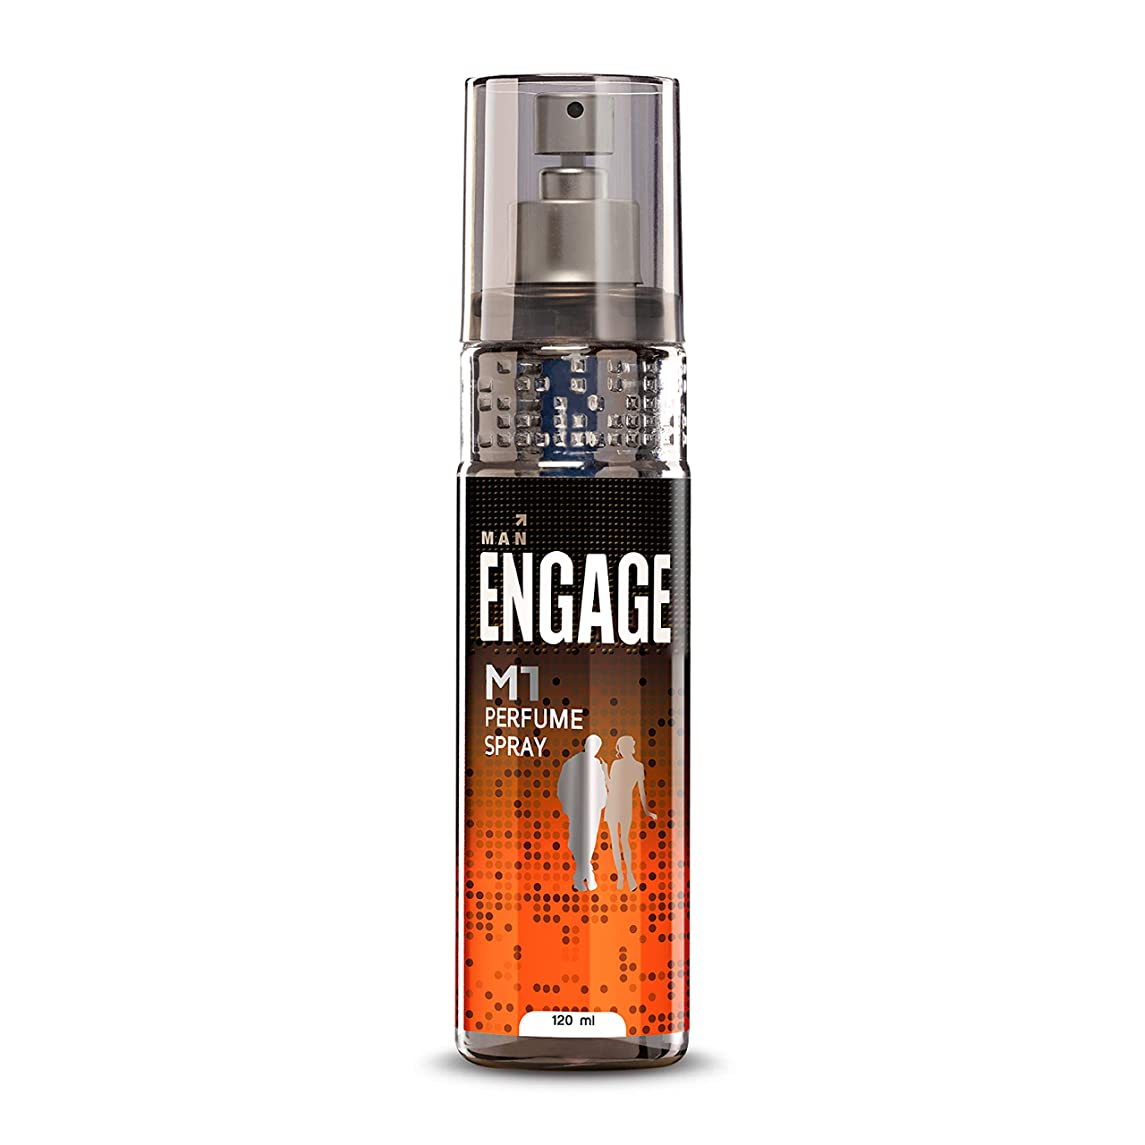 単調なスリッパ共感するEngage M1 Perfume Spray For Men, 120ml